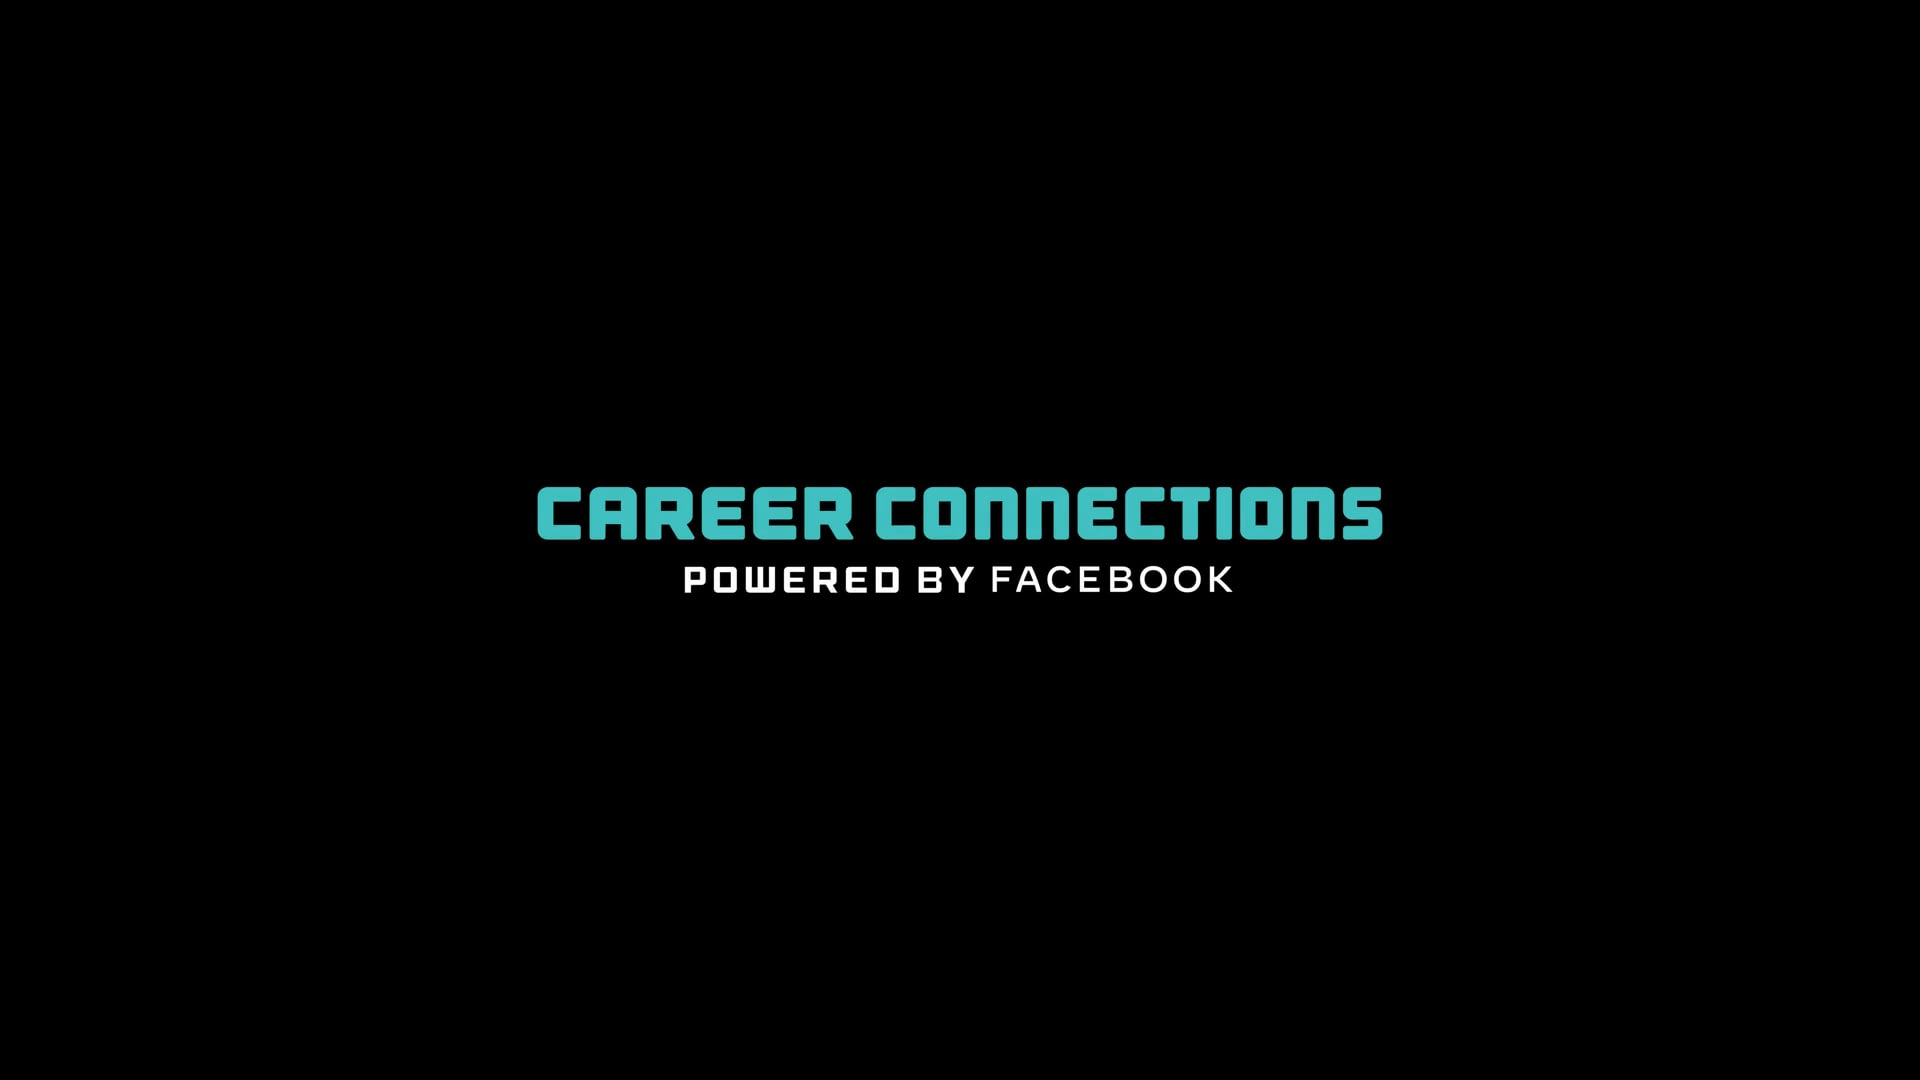 Facebook: What Does Your Career Sound Like (Final)